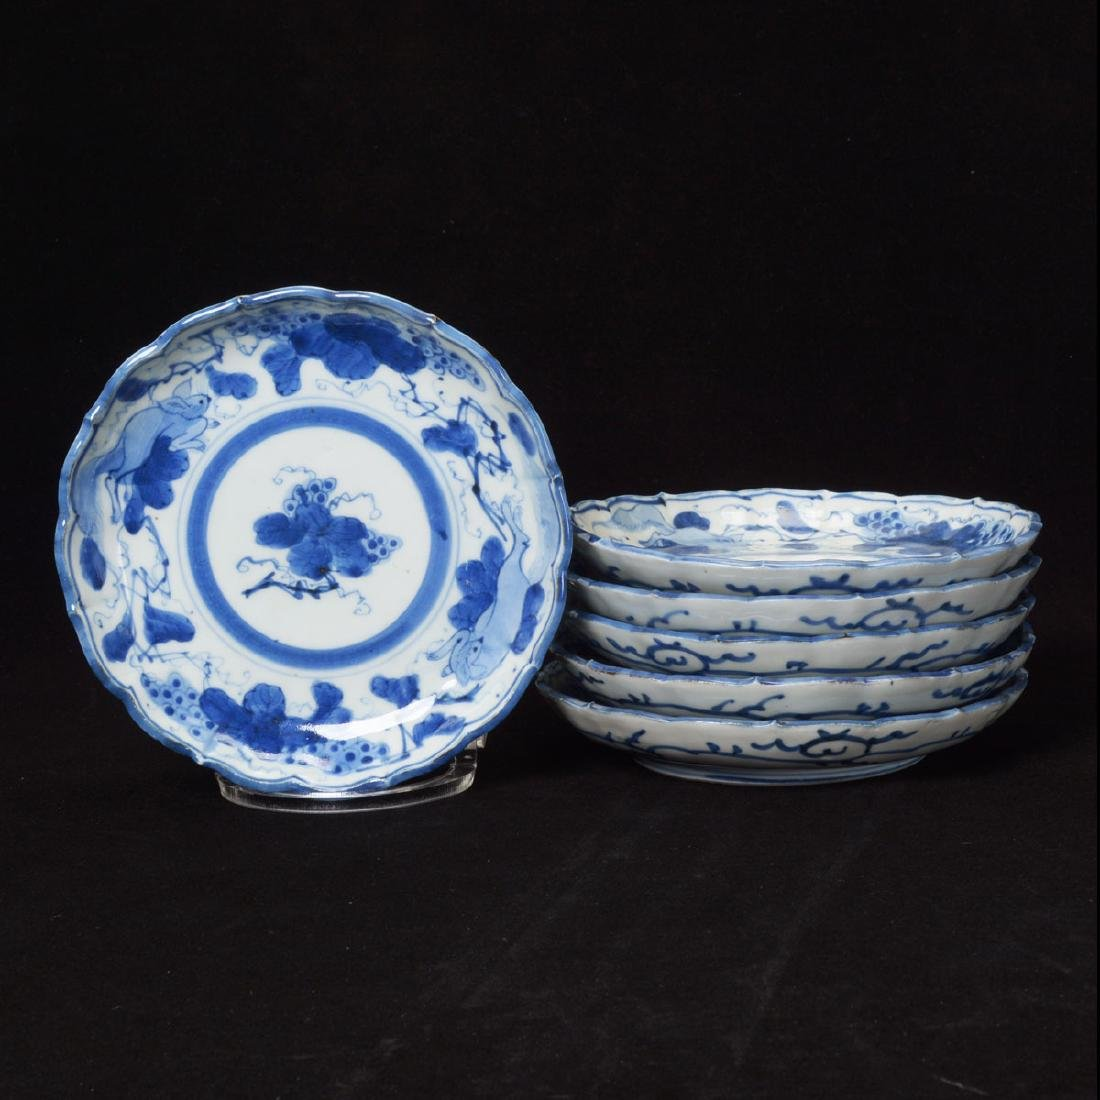 Six Arita Underglaze Blue Dishes, Edo Period